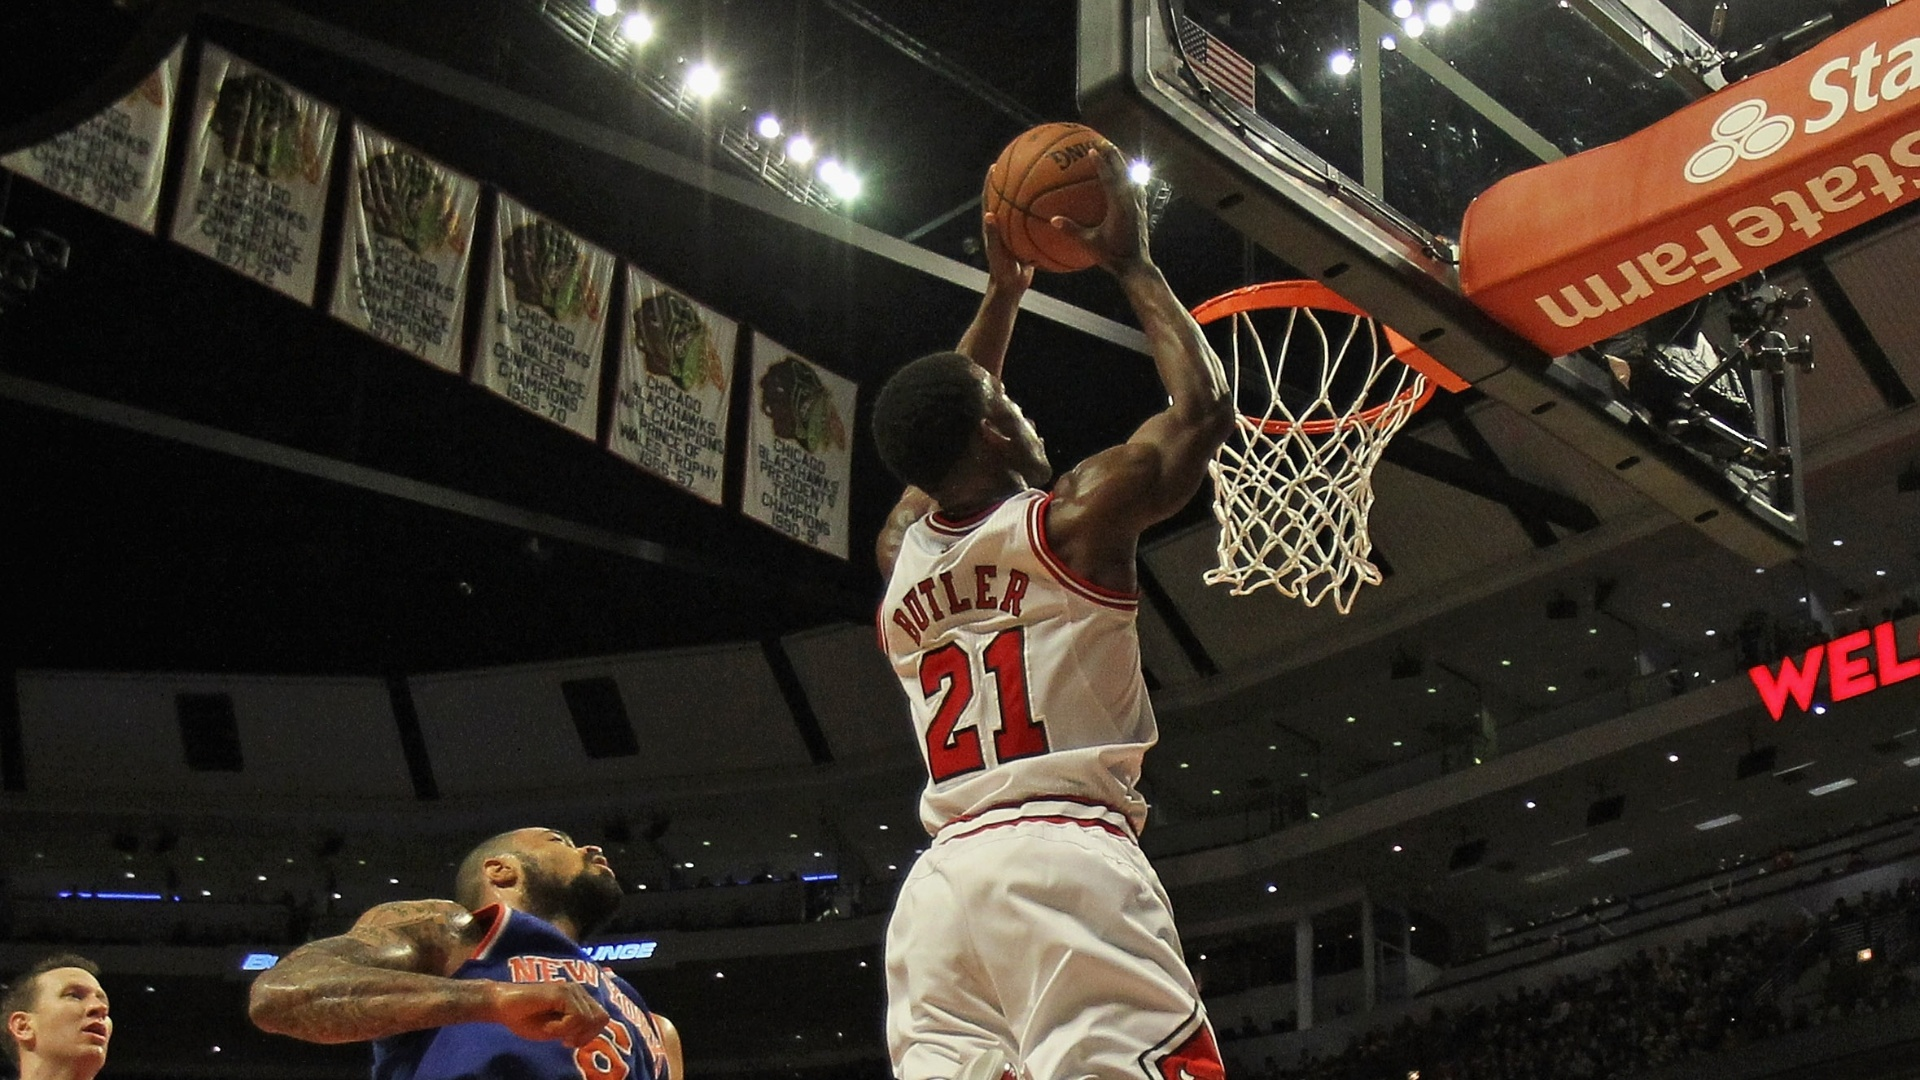 09.dez.2012 - Jimmy Butler, do Chicago Bulls, tenta a enterrada durante a partida contra o New York Knicks